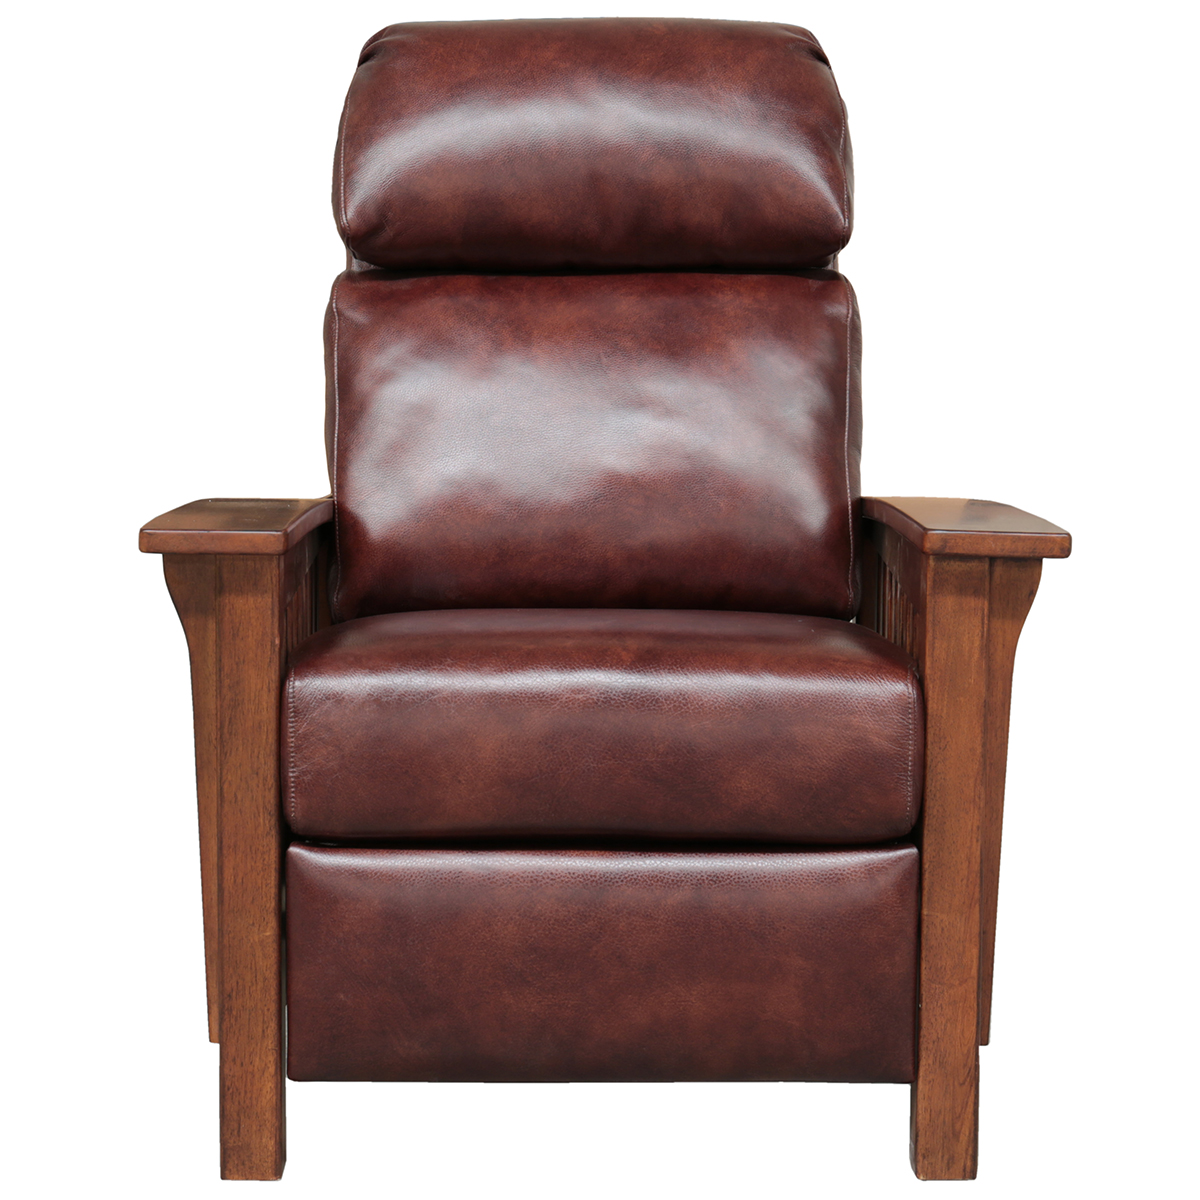 Barcalounger 7 3323 5702 87 Mission Recliner In Wenlock Fudge Leather W Wood Arms